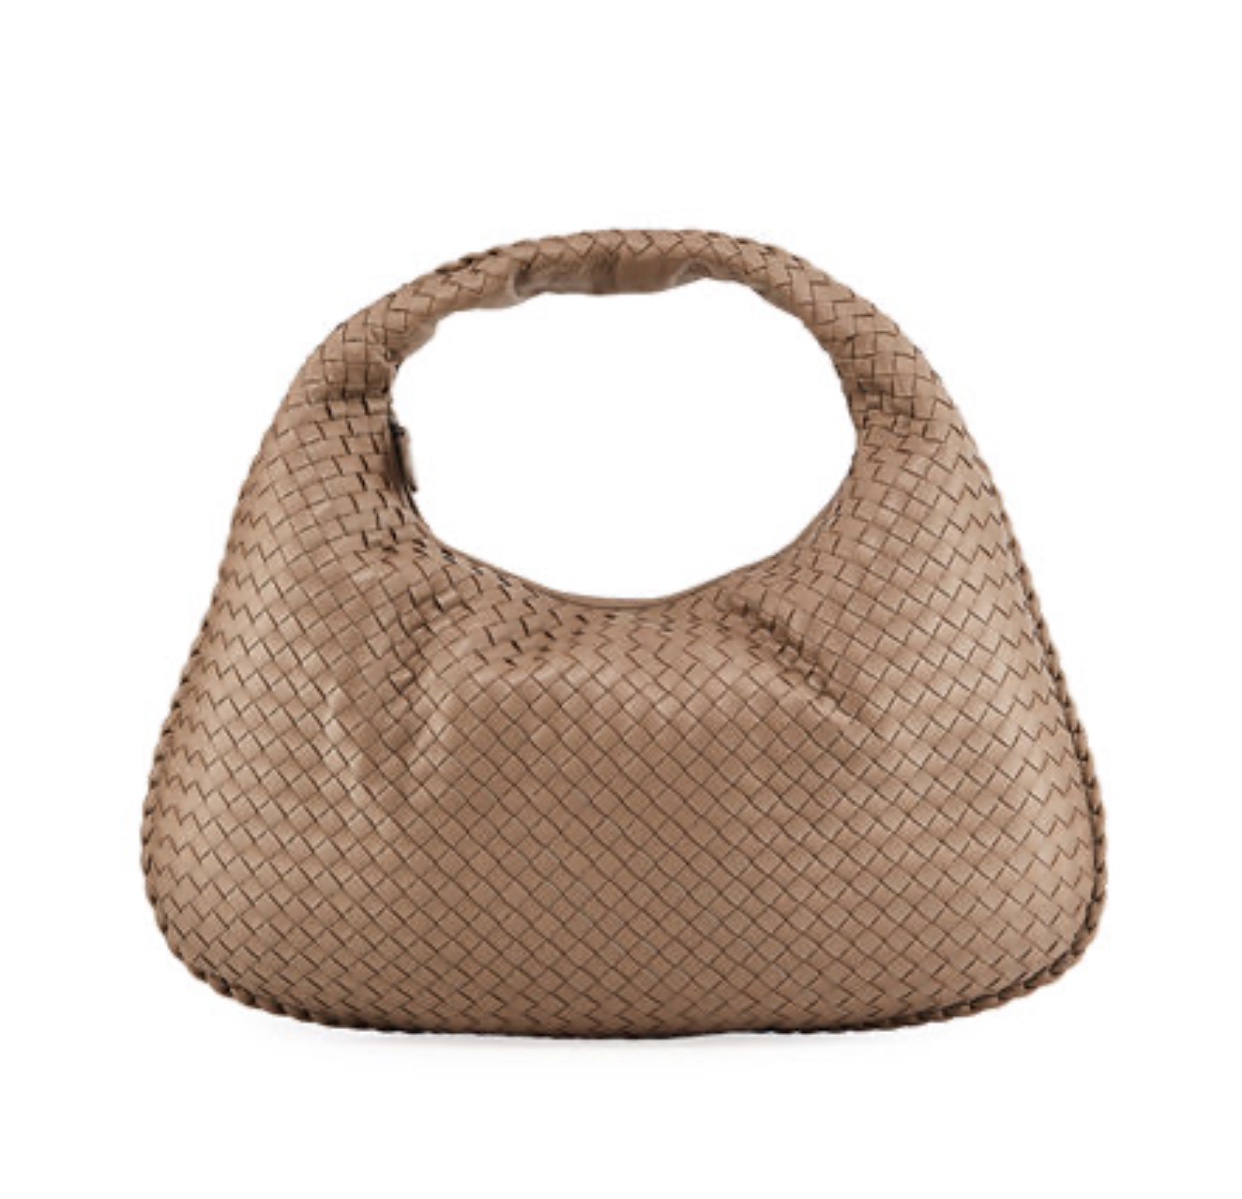 BOTTEGA VENETA Veneta intrecciato large hobo bag light gray